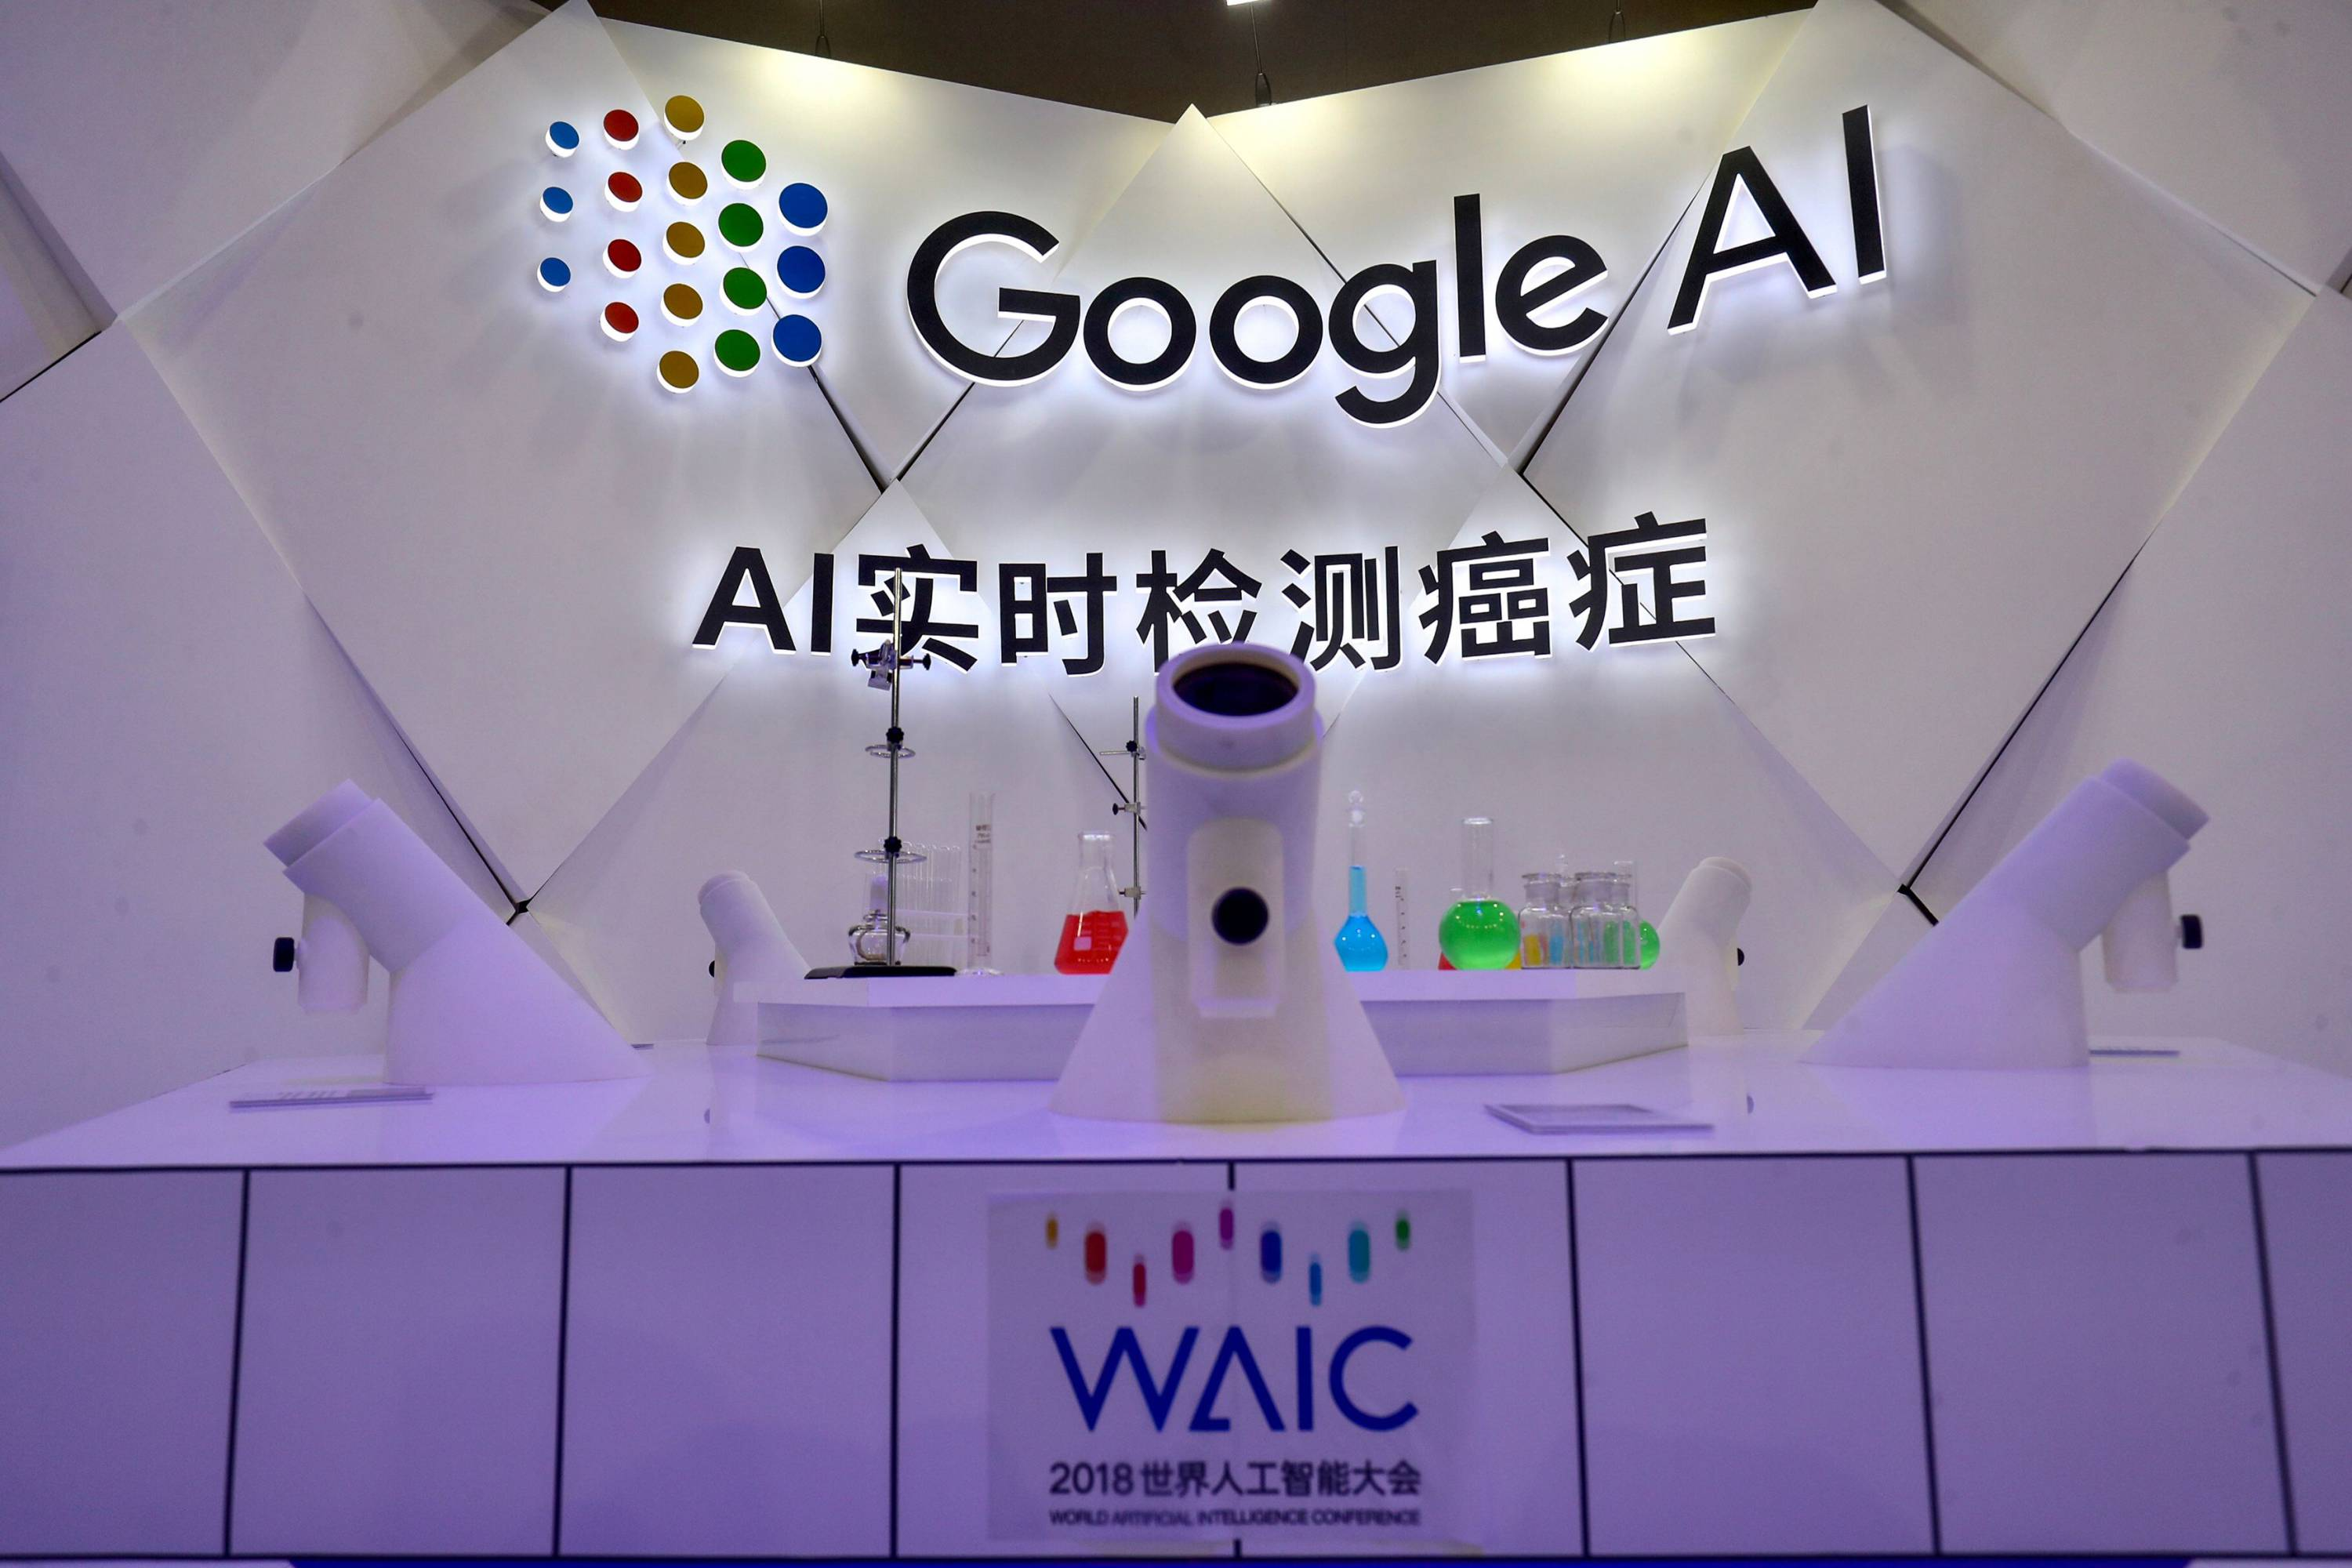 Google and Facebook are teaming up on artificial intelligence technology involving Google's TPU chips.